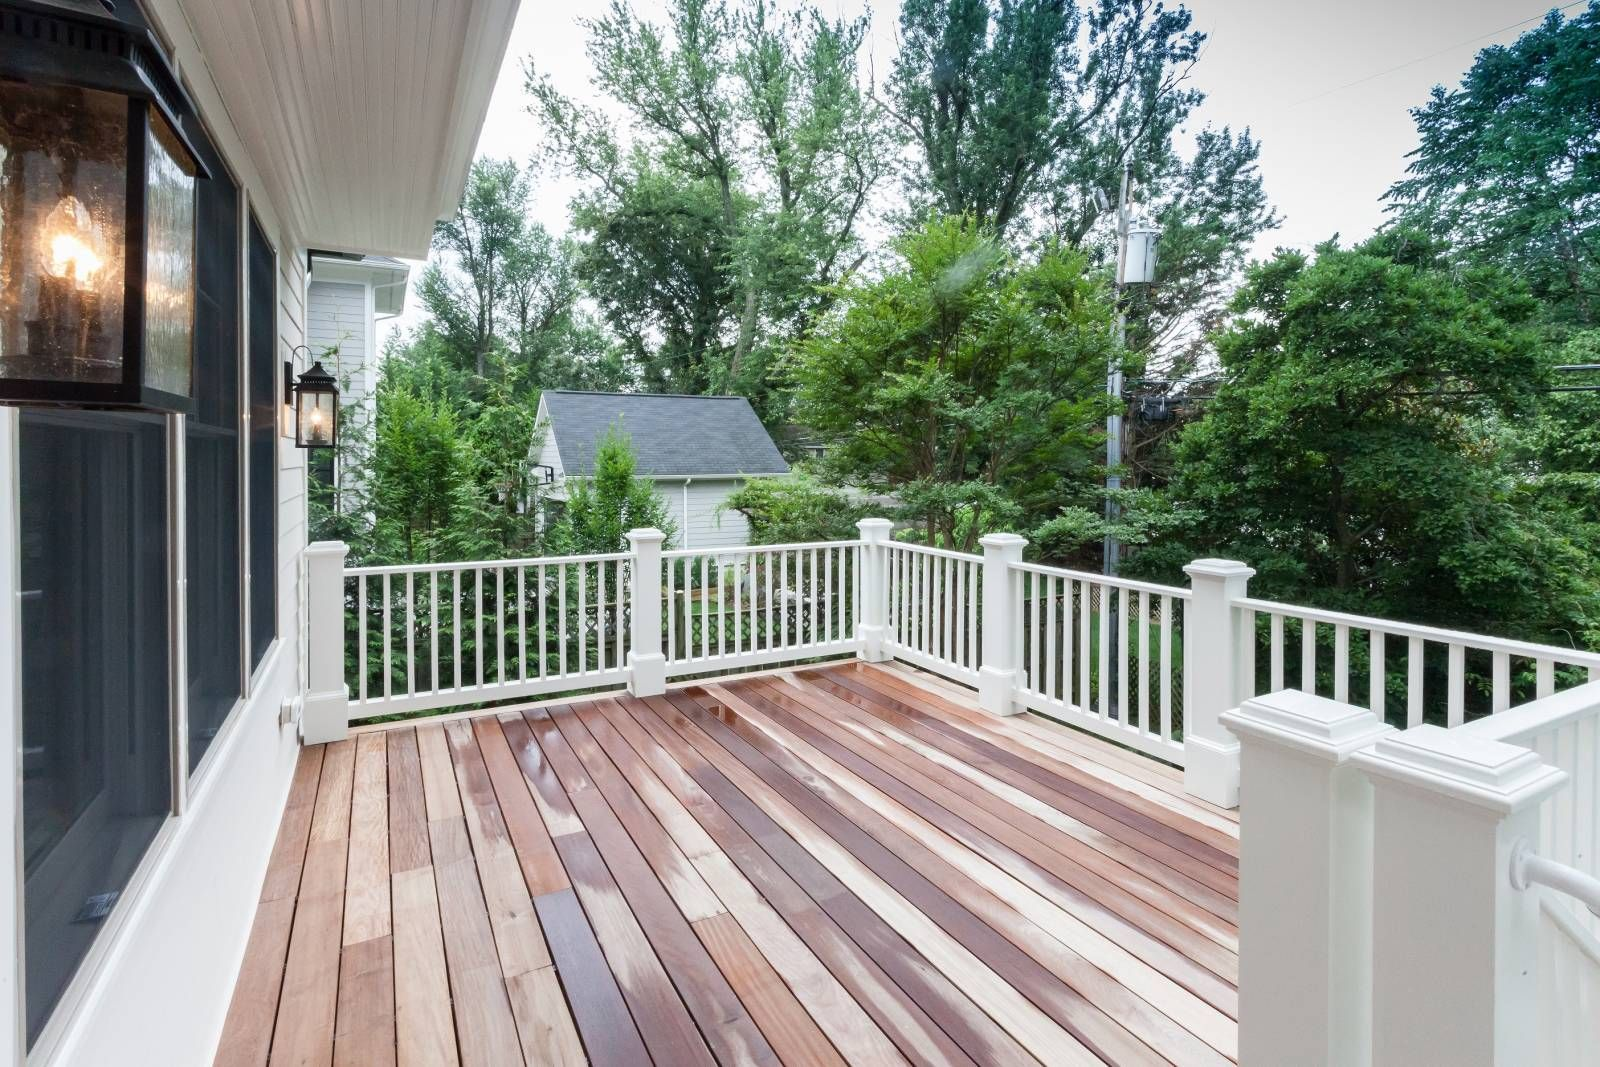 Deck Off Kitchen And Family Room Overlooking Private Back Yard Of